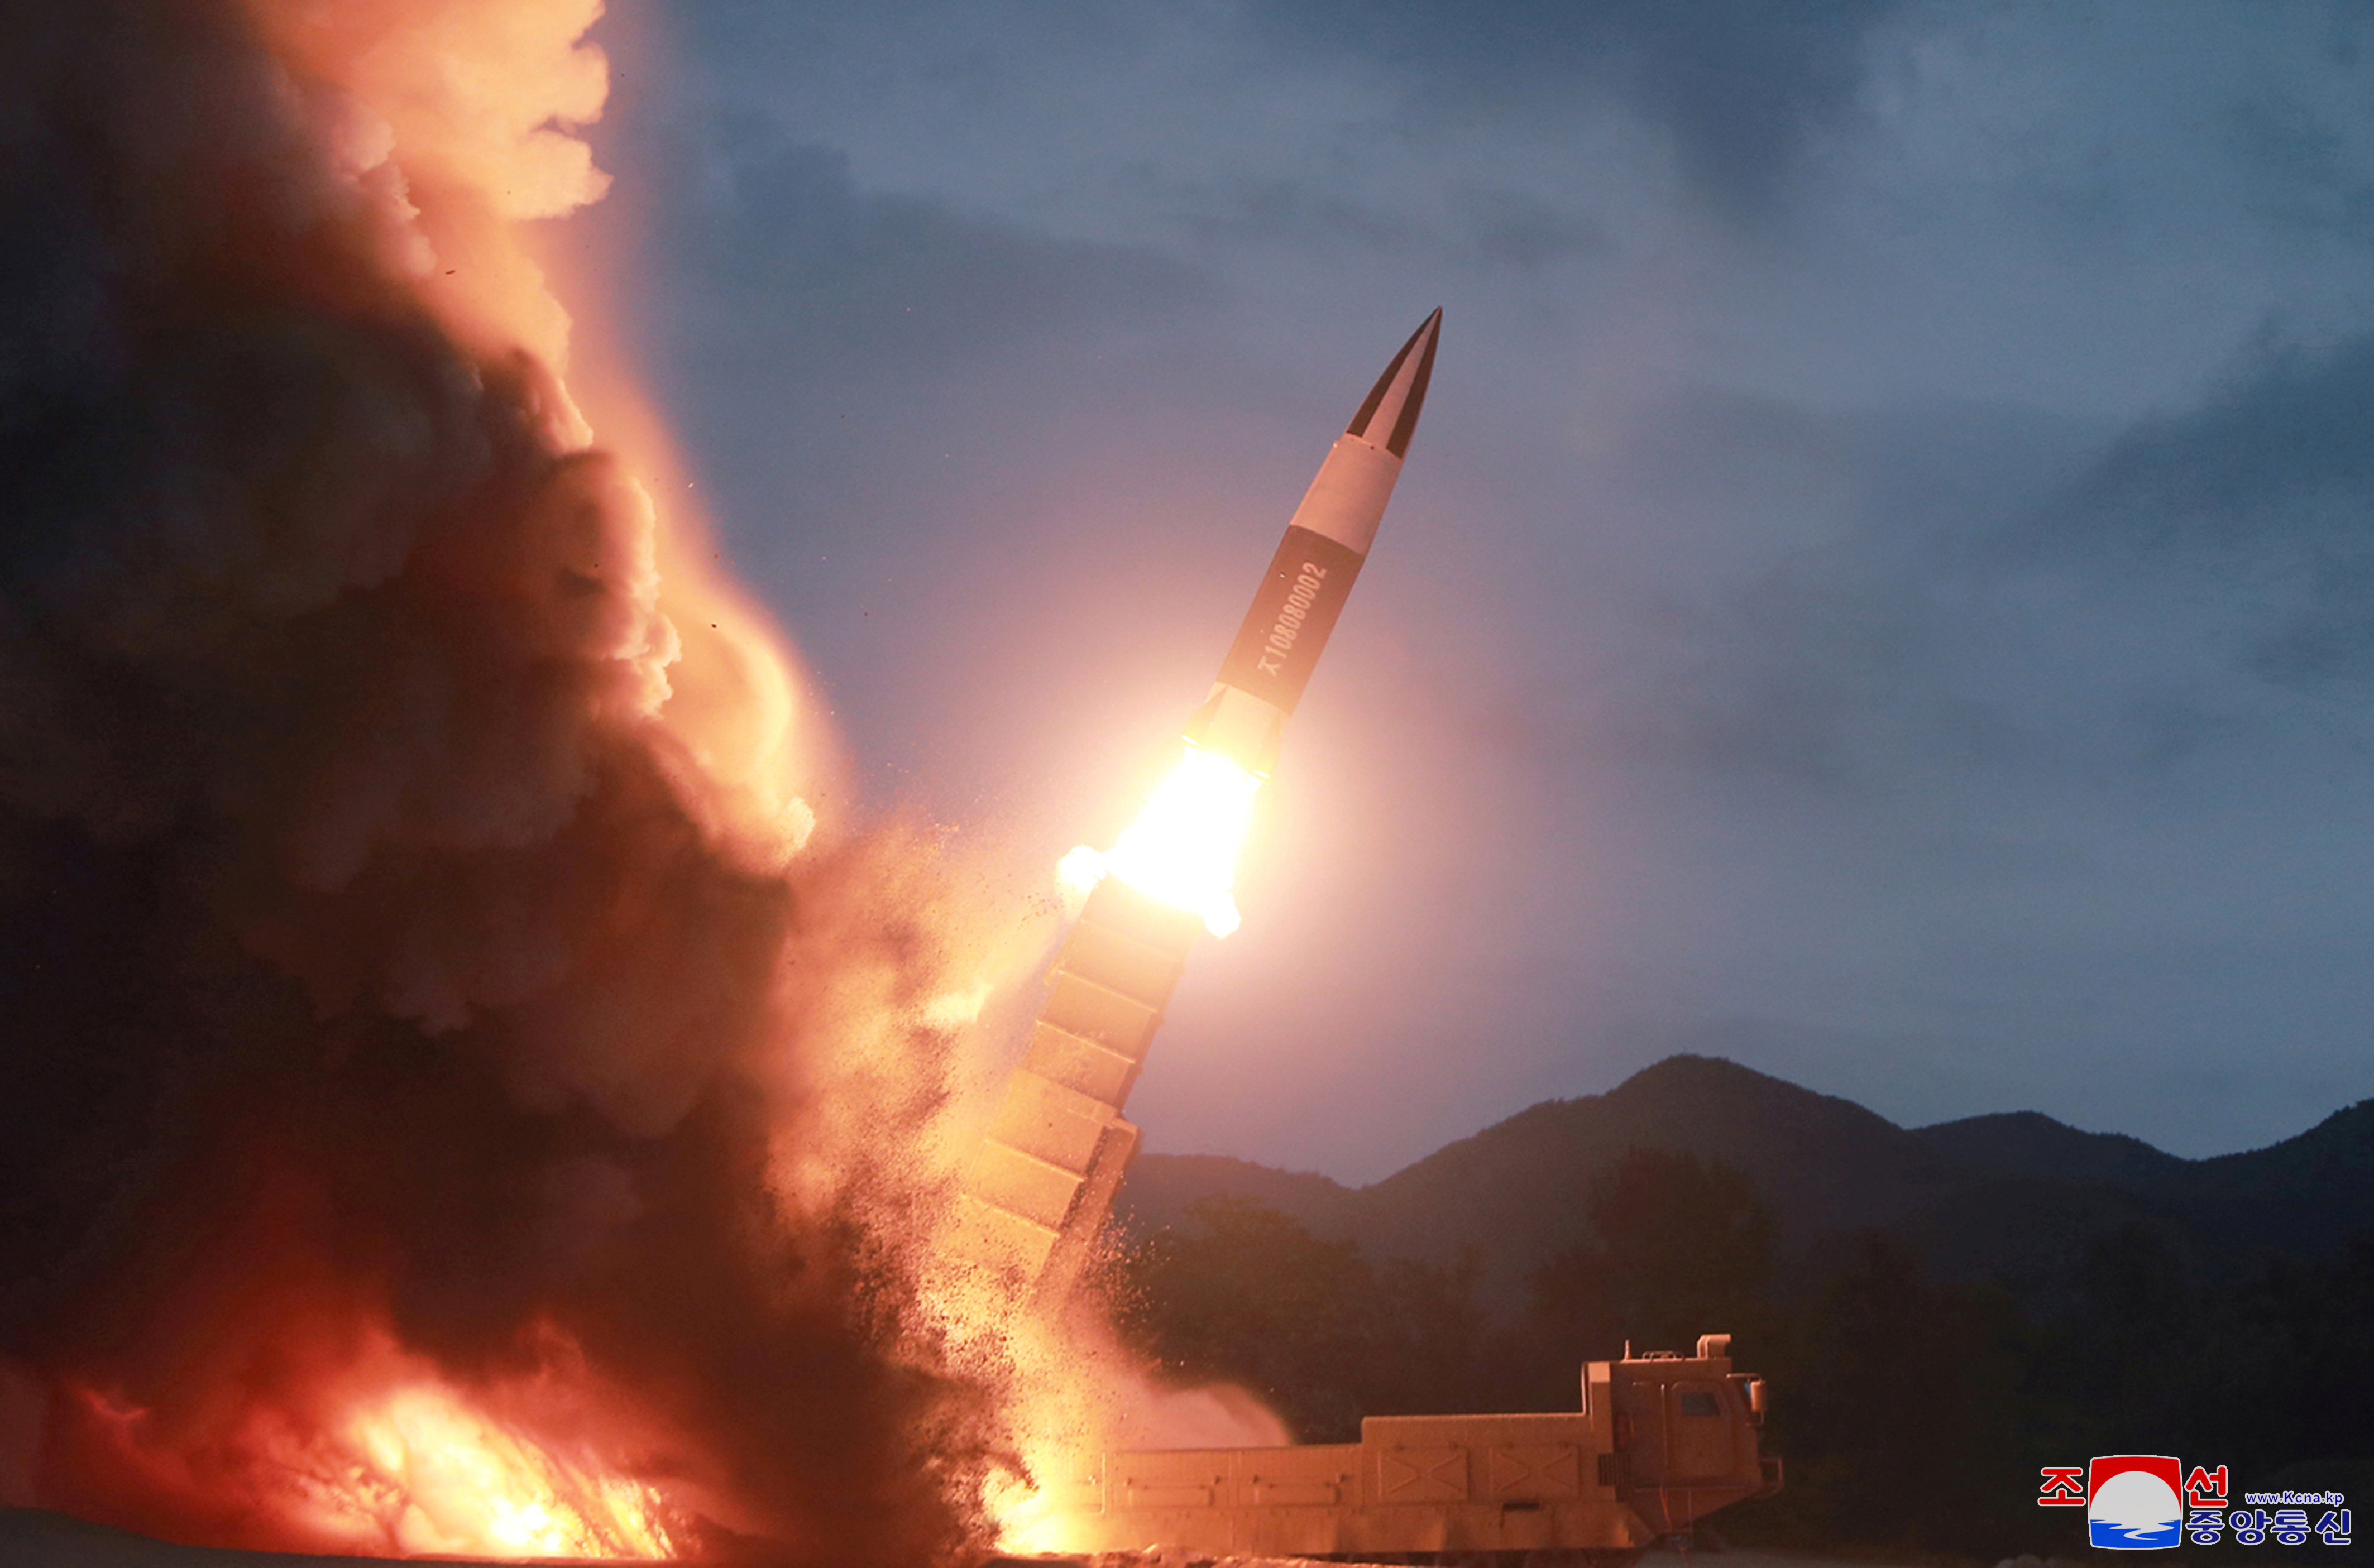 Japan Wants Missile Defenses to Protect the 2020 Olympics (From North Korea) - The National Interest Online